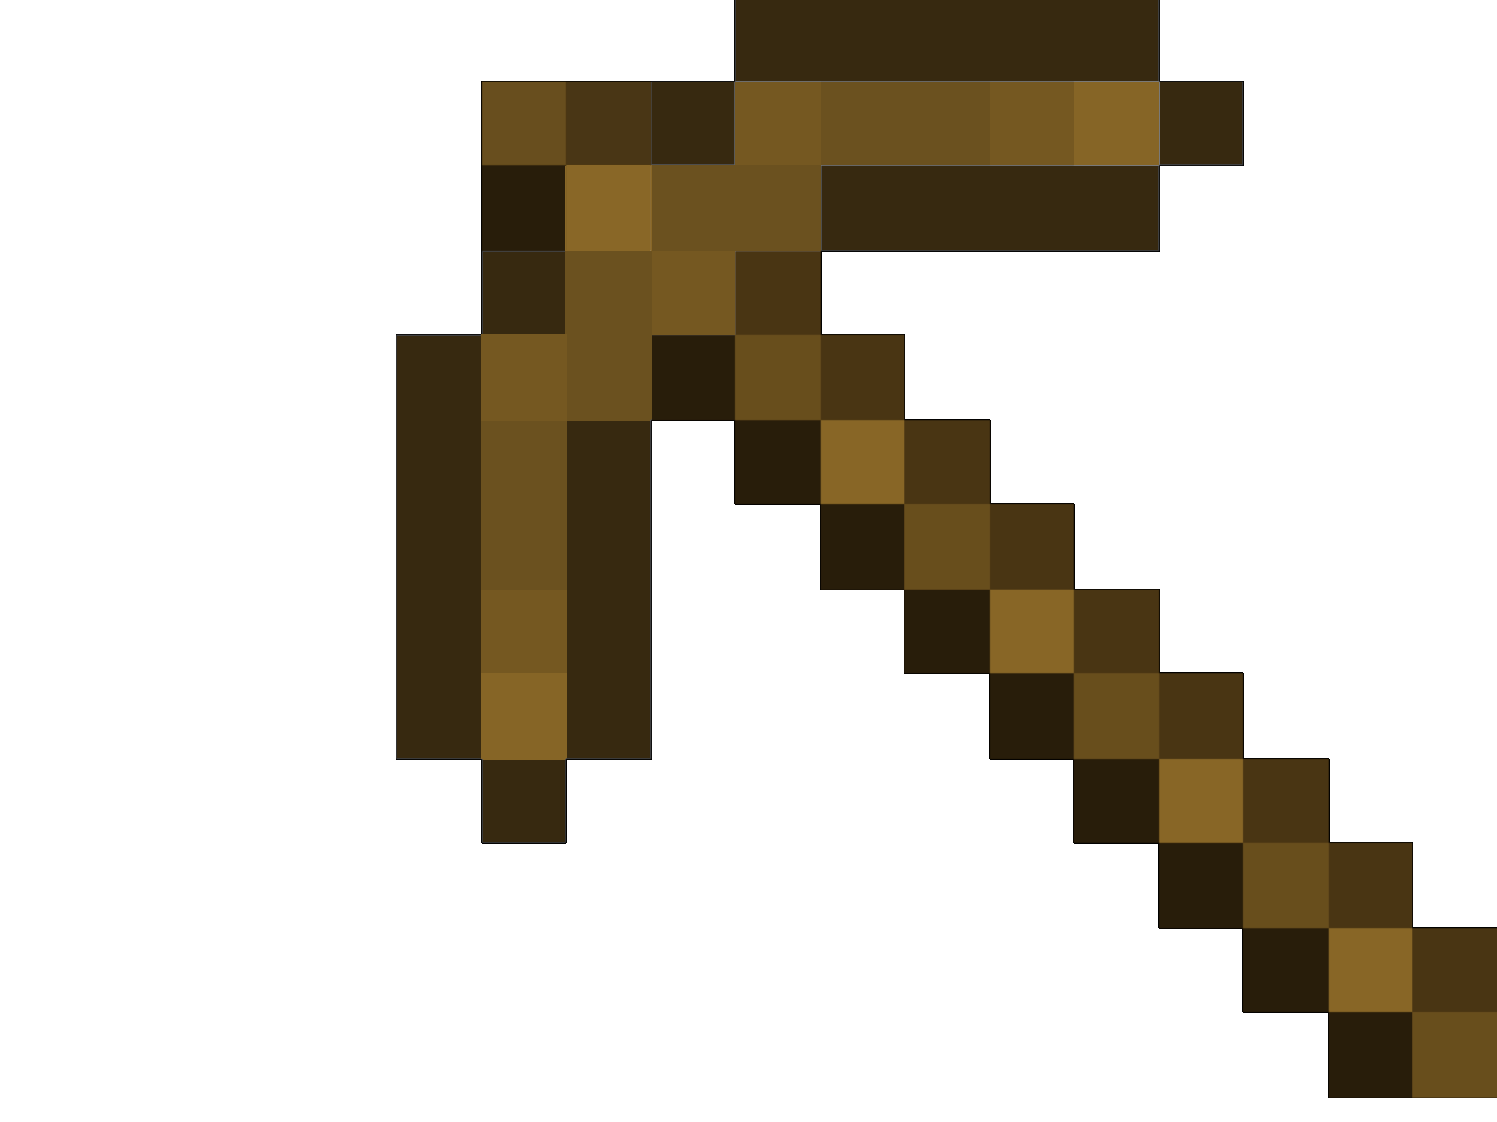 How To Build A Wooden Pickaxe In Minecraft